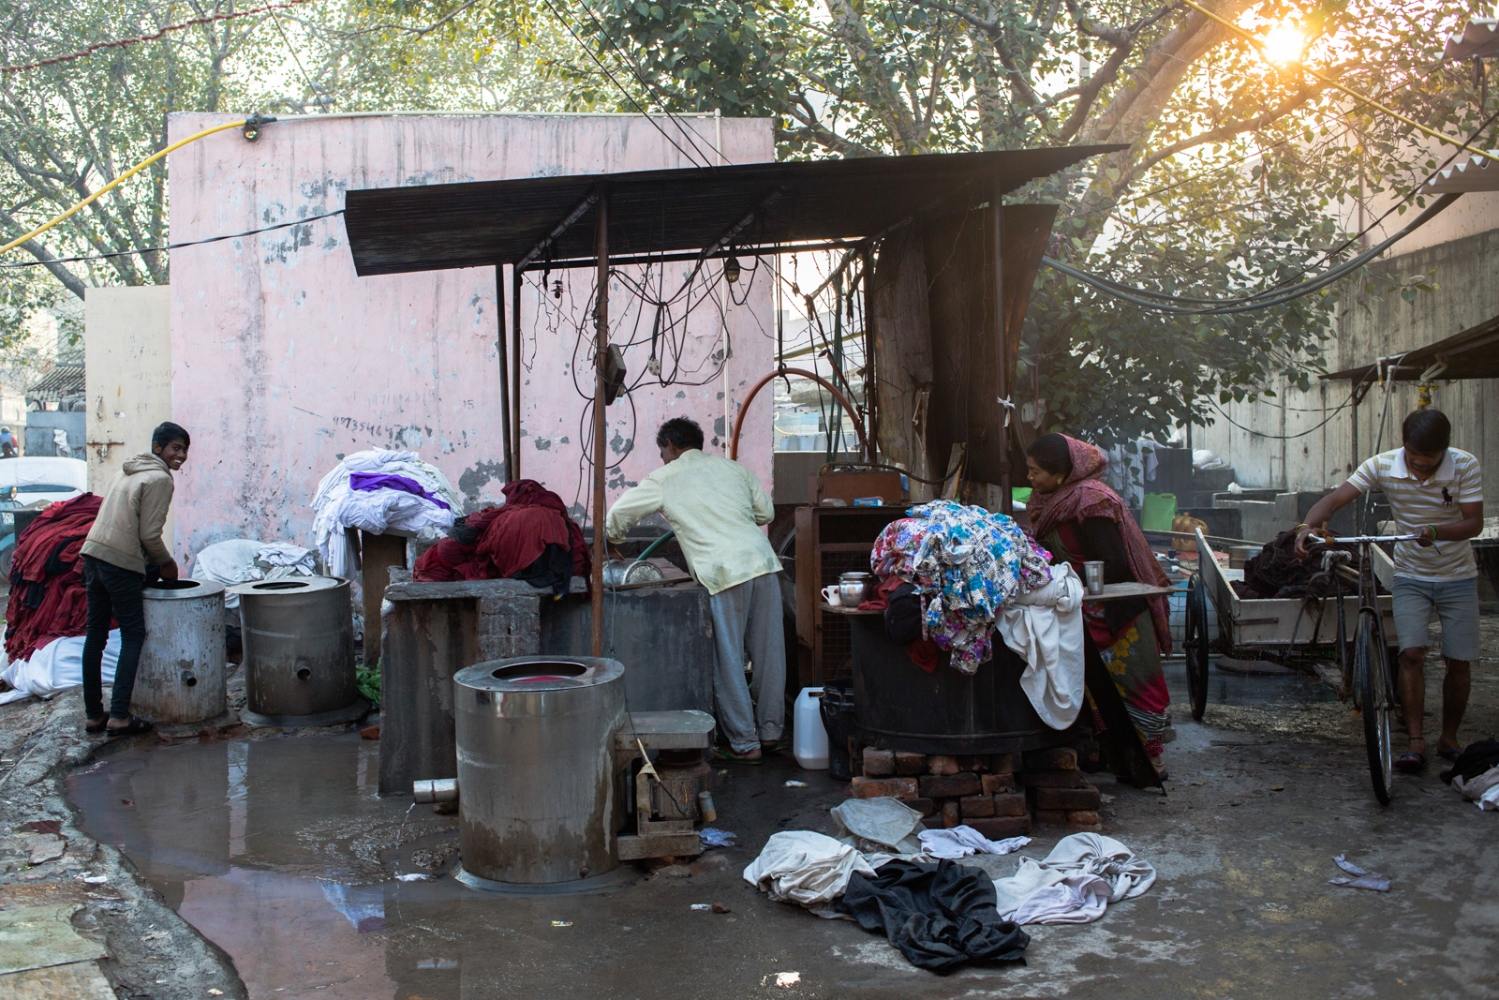 "Indian washerman Om Prakash (C), 49, and his wife Sunita (2R), 39, talk with their employees Rohit Kumar (L), 16, and Bula Kumar (R), 23, as they work to wash and dry towels used at a spa in the city at a dhobi ghat outdoor laundry in New Delhi on February 12, 2015. Together the couple run a business providing laundry services for hotels, beauty parlours and spas in the city, collecting and delivering towels and bedding. Om says, ""I have been working here for 28 years, and I have been married to my wife for 26. She is my Agra, my Taj Mahal, my sunrise, my queen."""